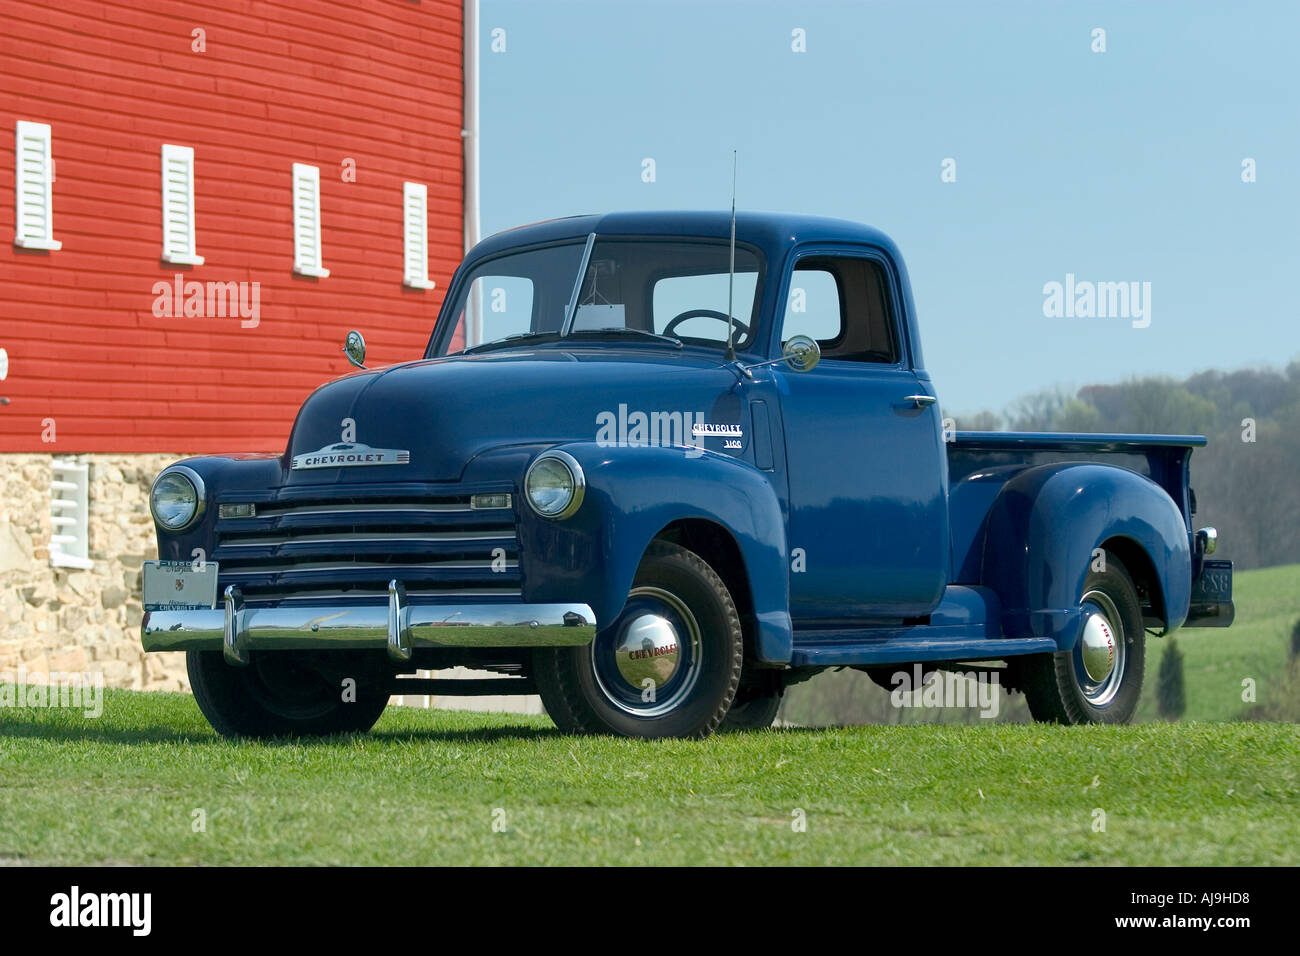 Old Chevy Pickup Truck Stock Photo, Royalty Free Image: 4787671 - Alamy